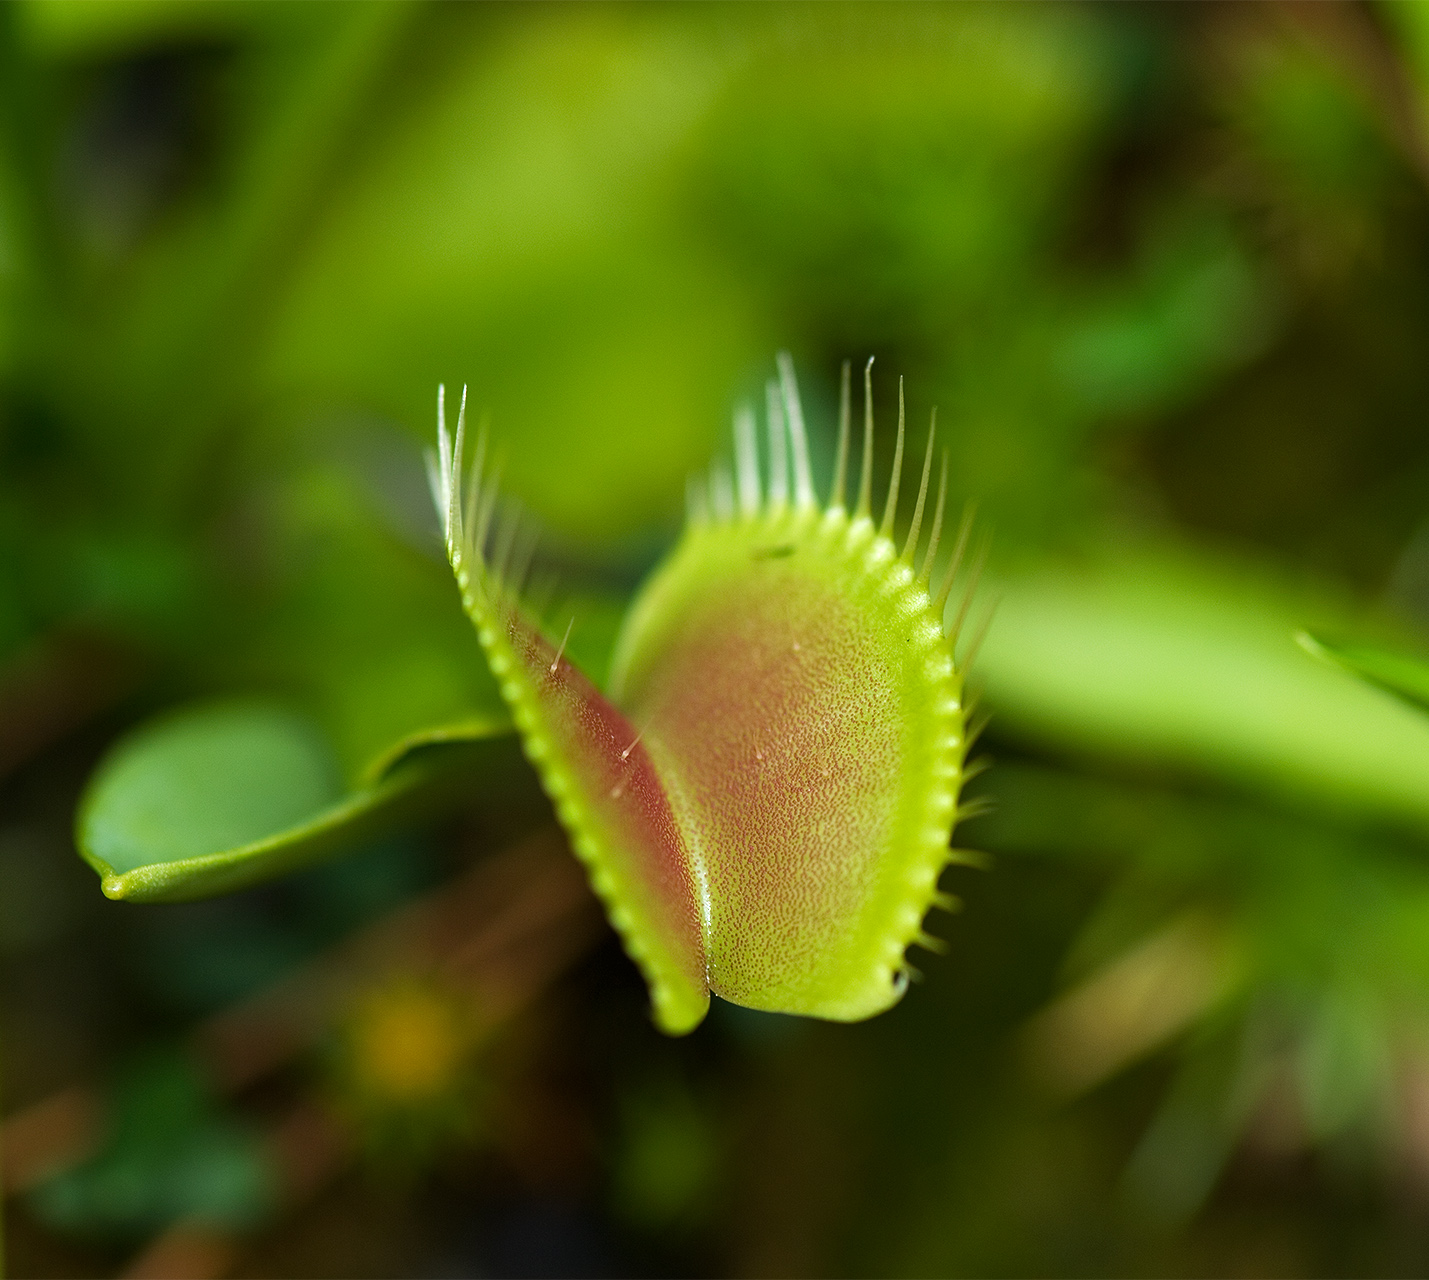 Venus Fly Trap close up